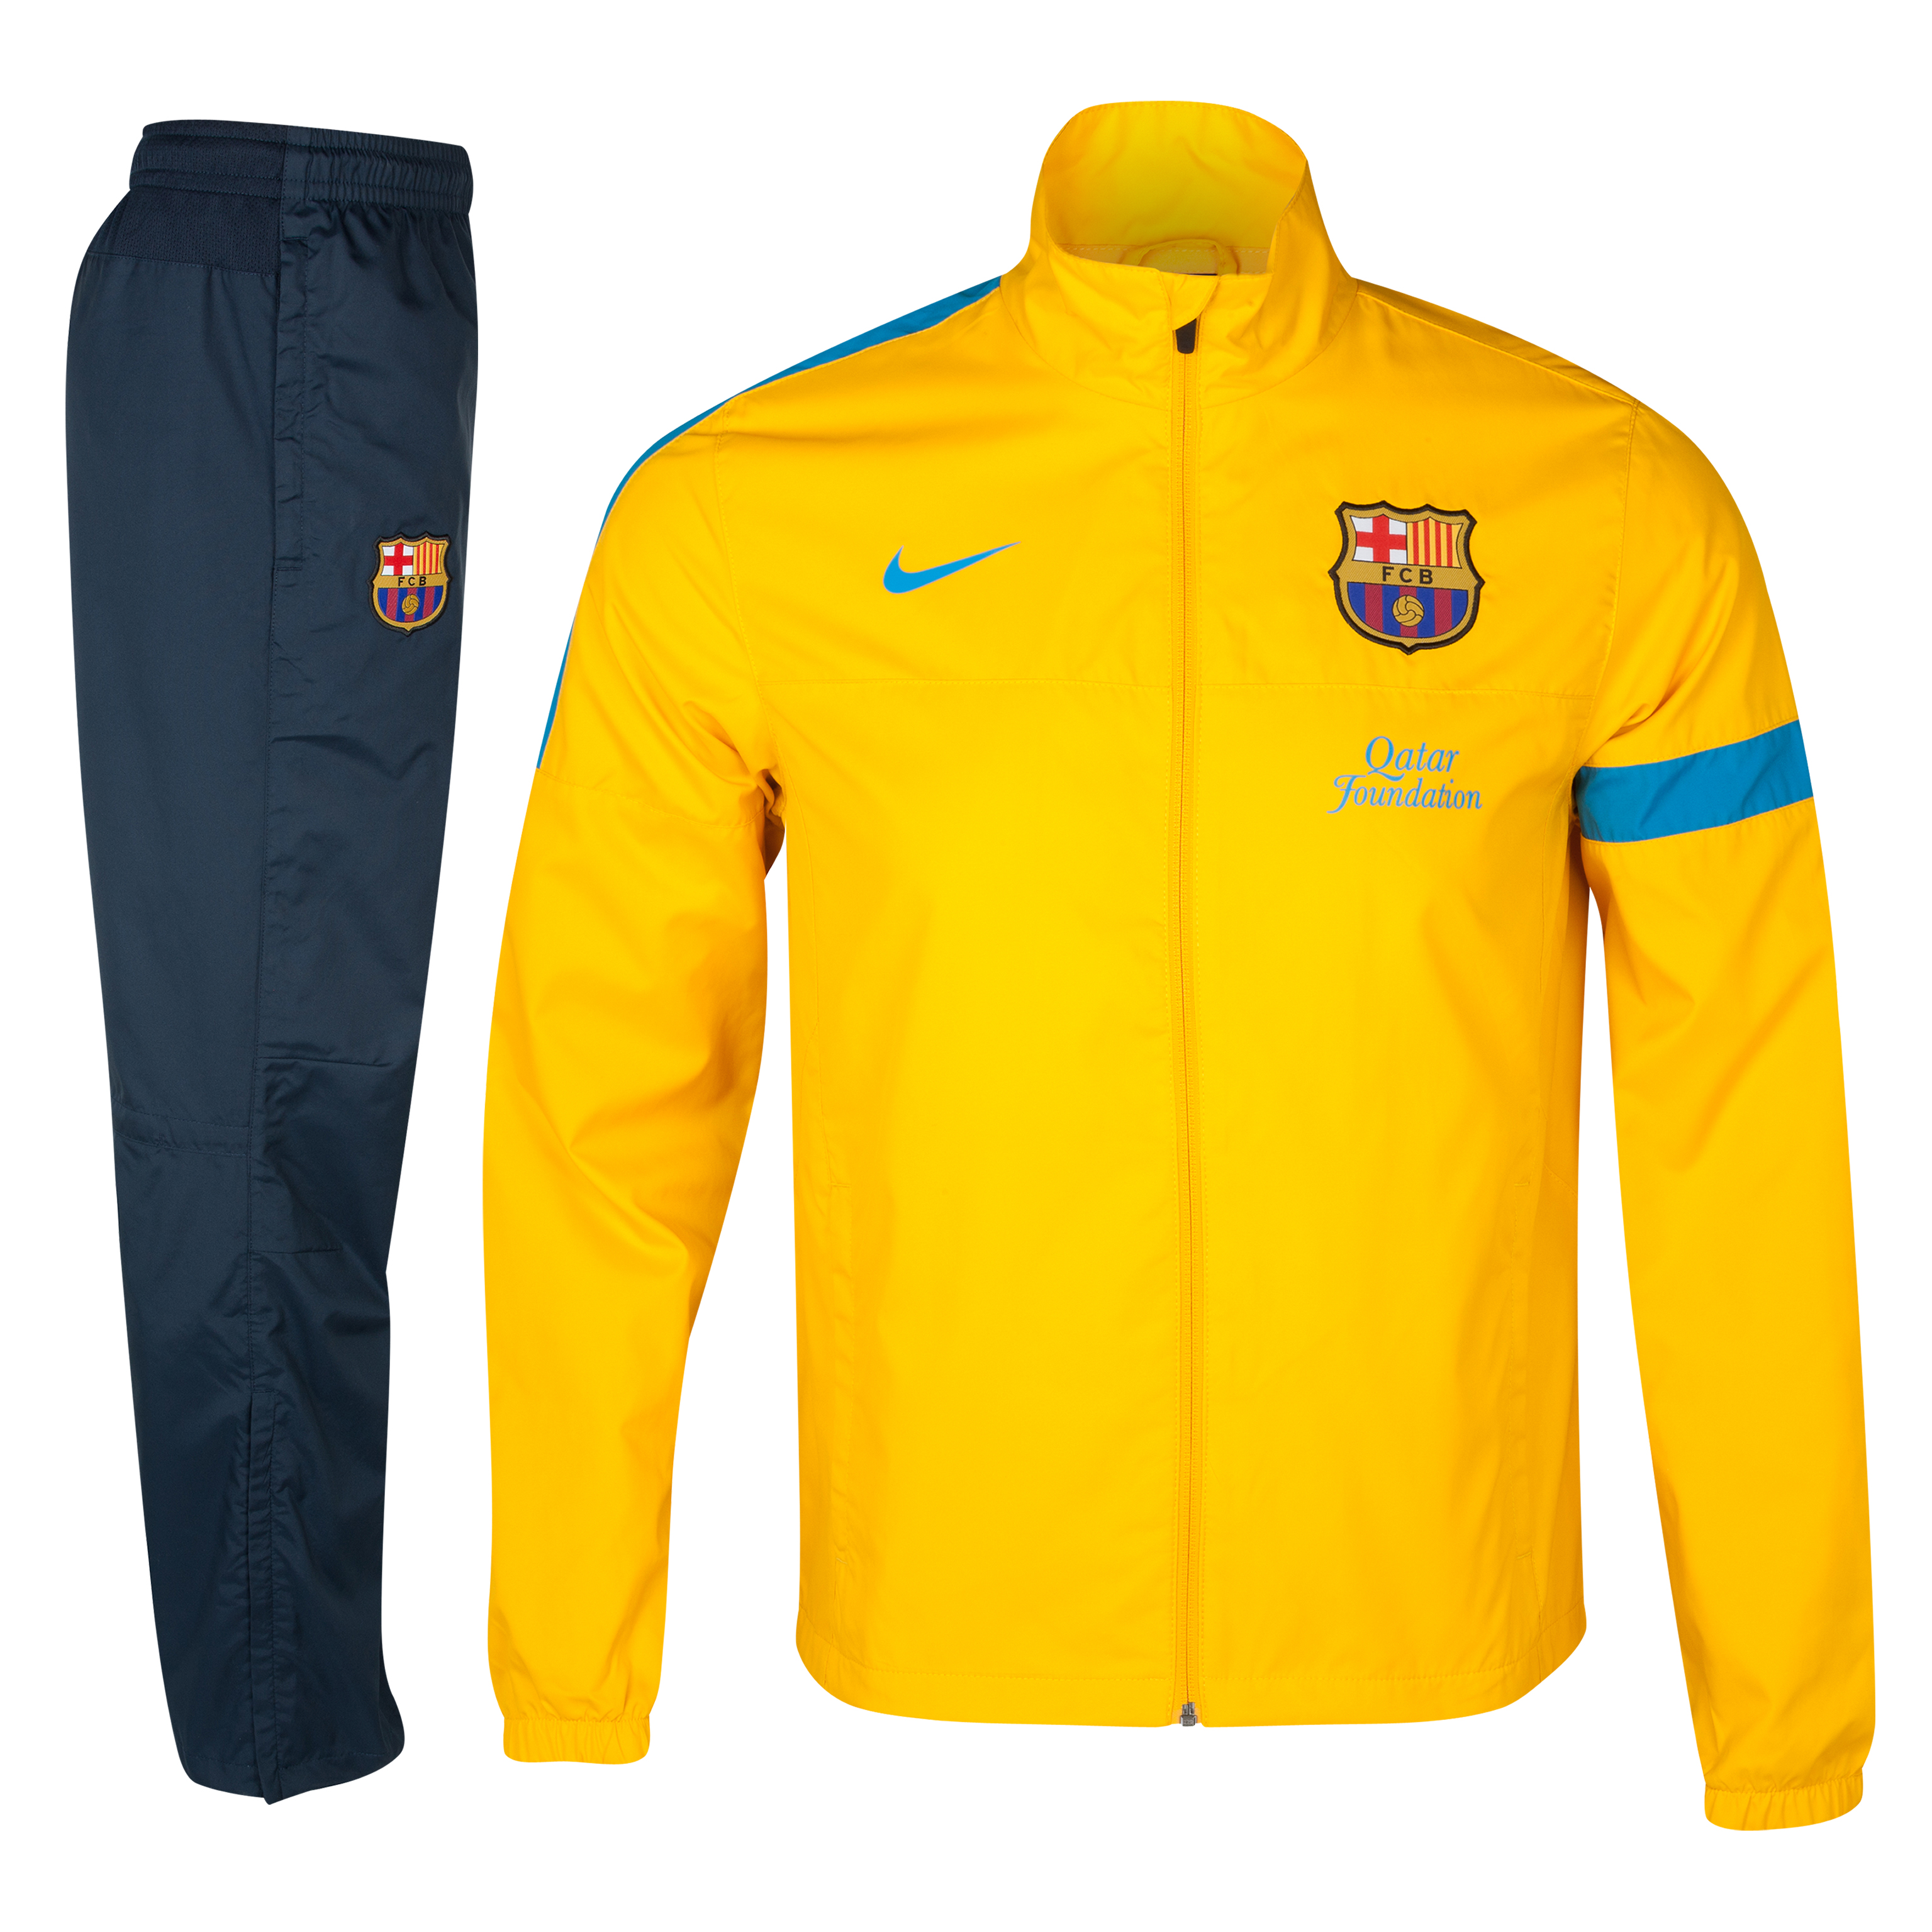 Barcelona Sideline Woven Warm Up Tracksuit - University Gold/Dynamic Blue - Youths